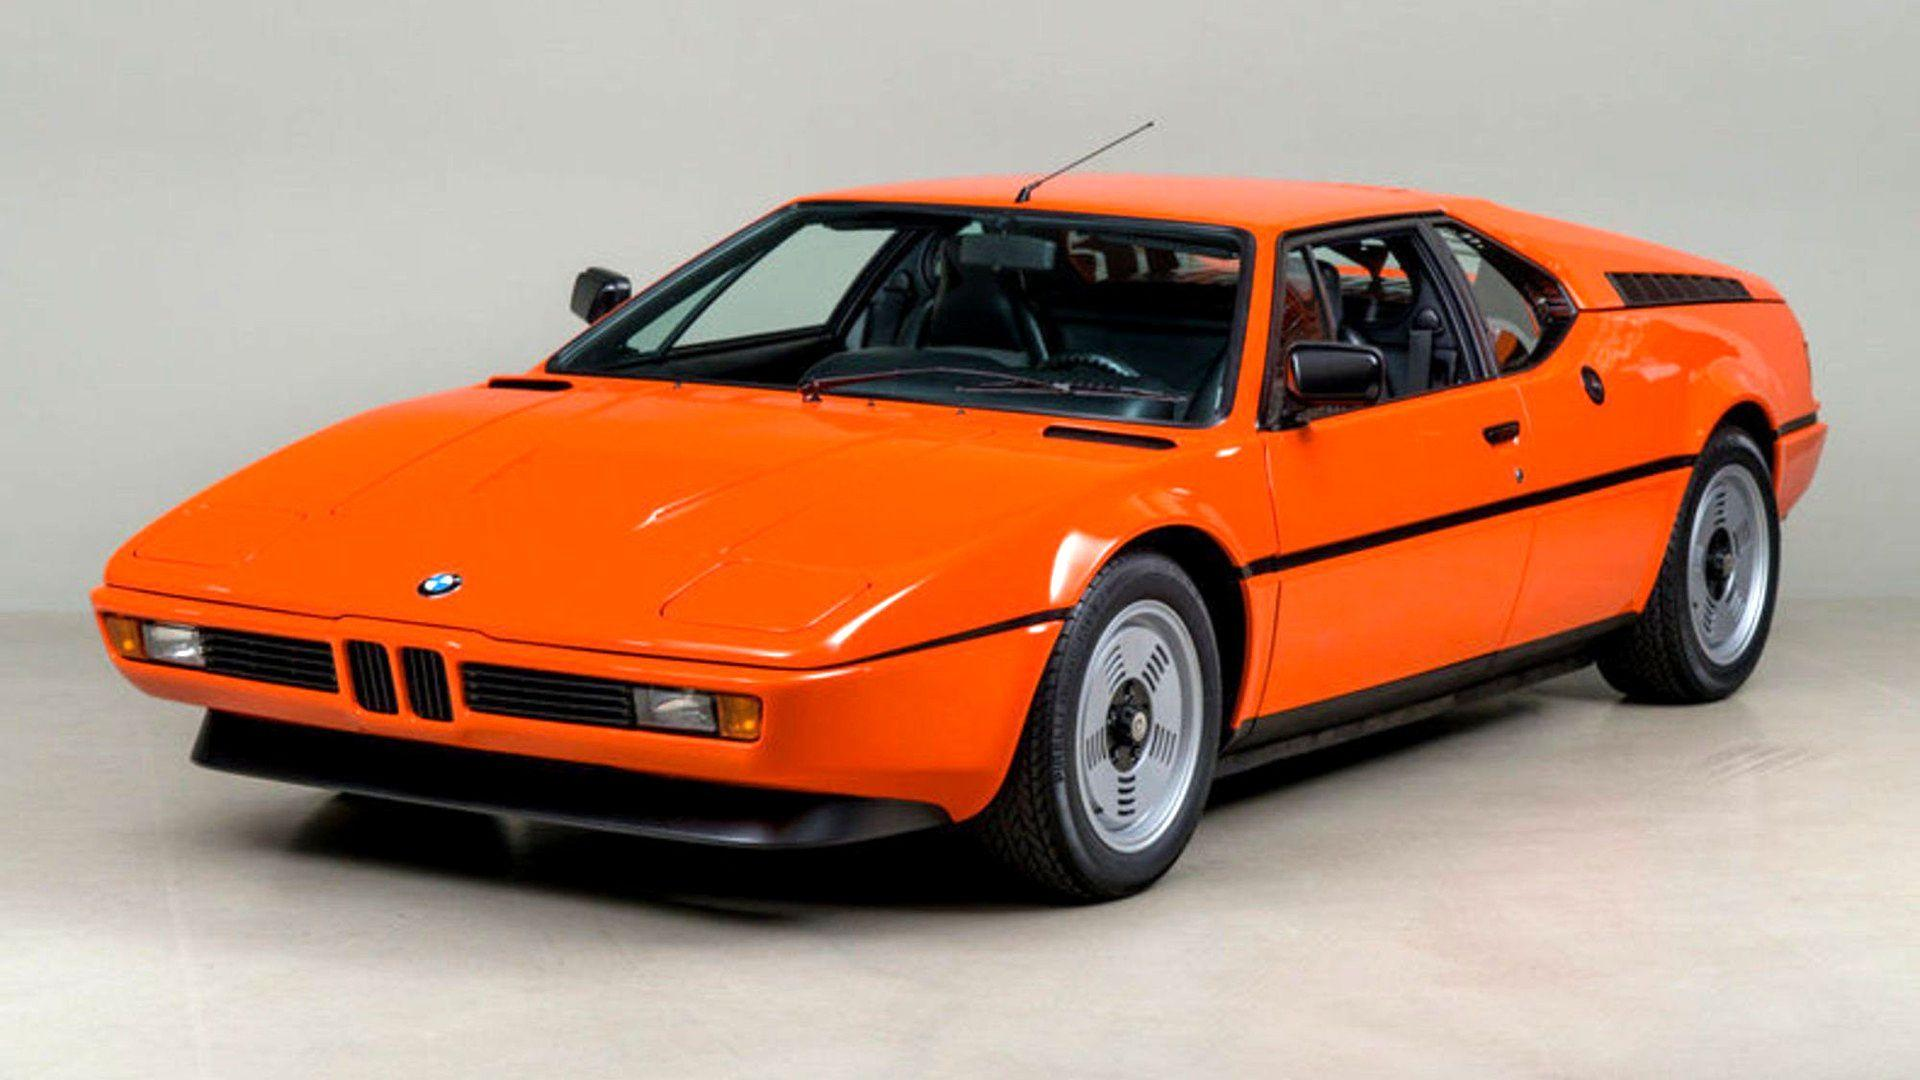 Bmw M1 For Sale >> Satilik 1980 Bmw M1 Fotograf Galerisi